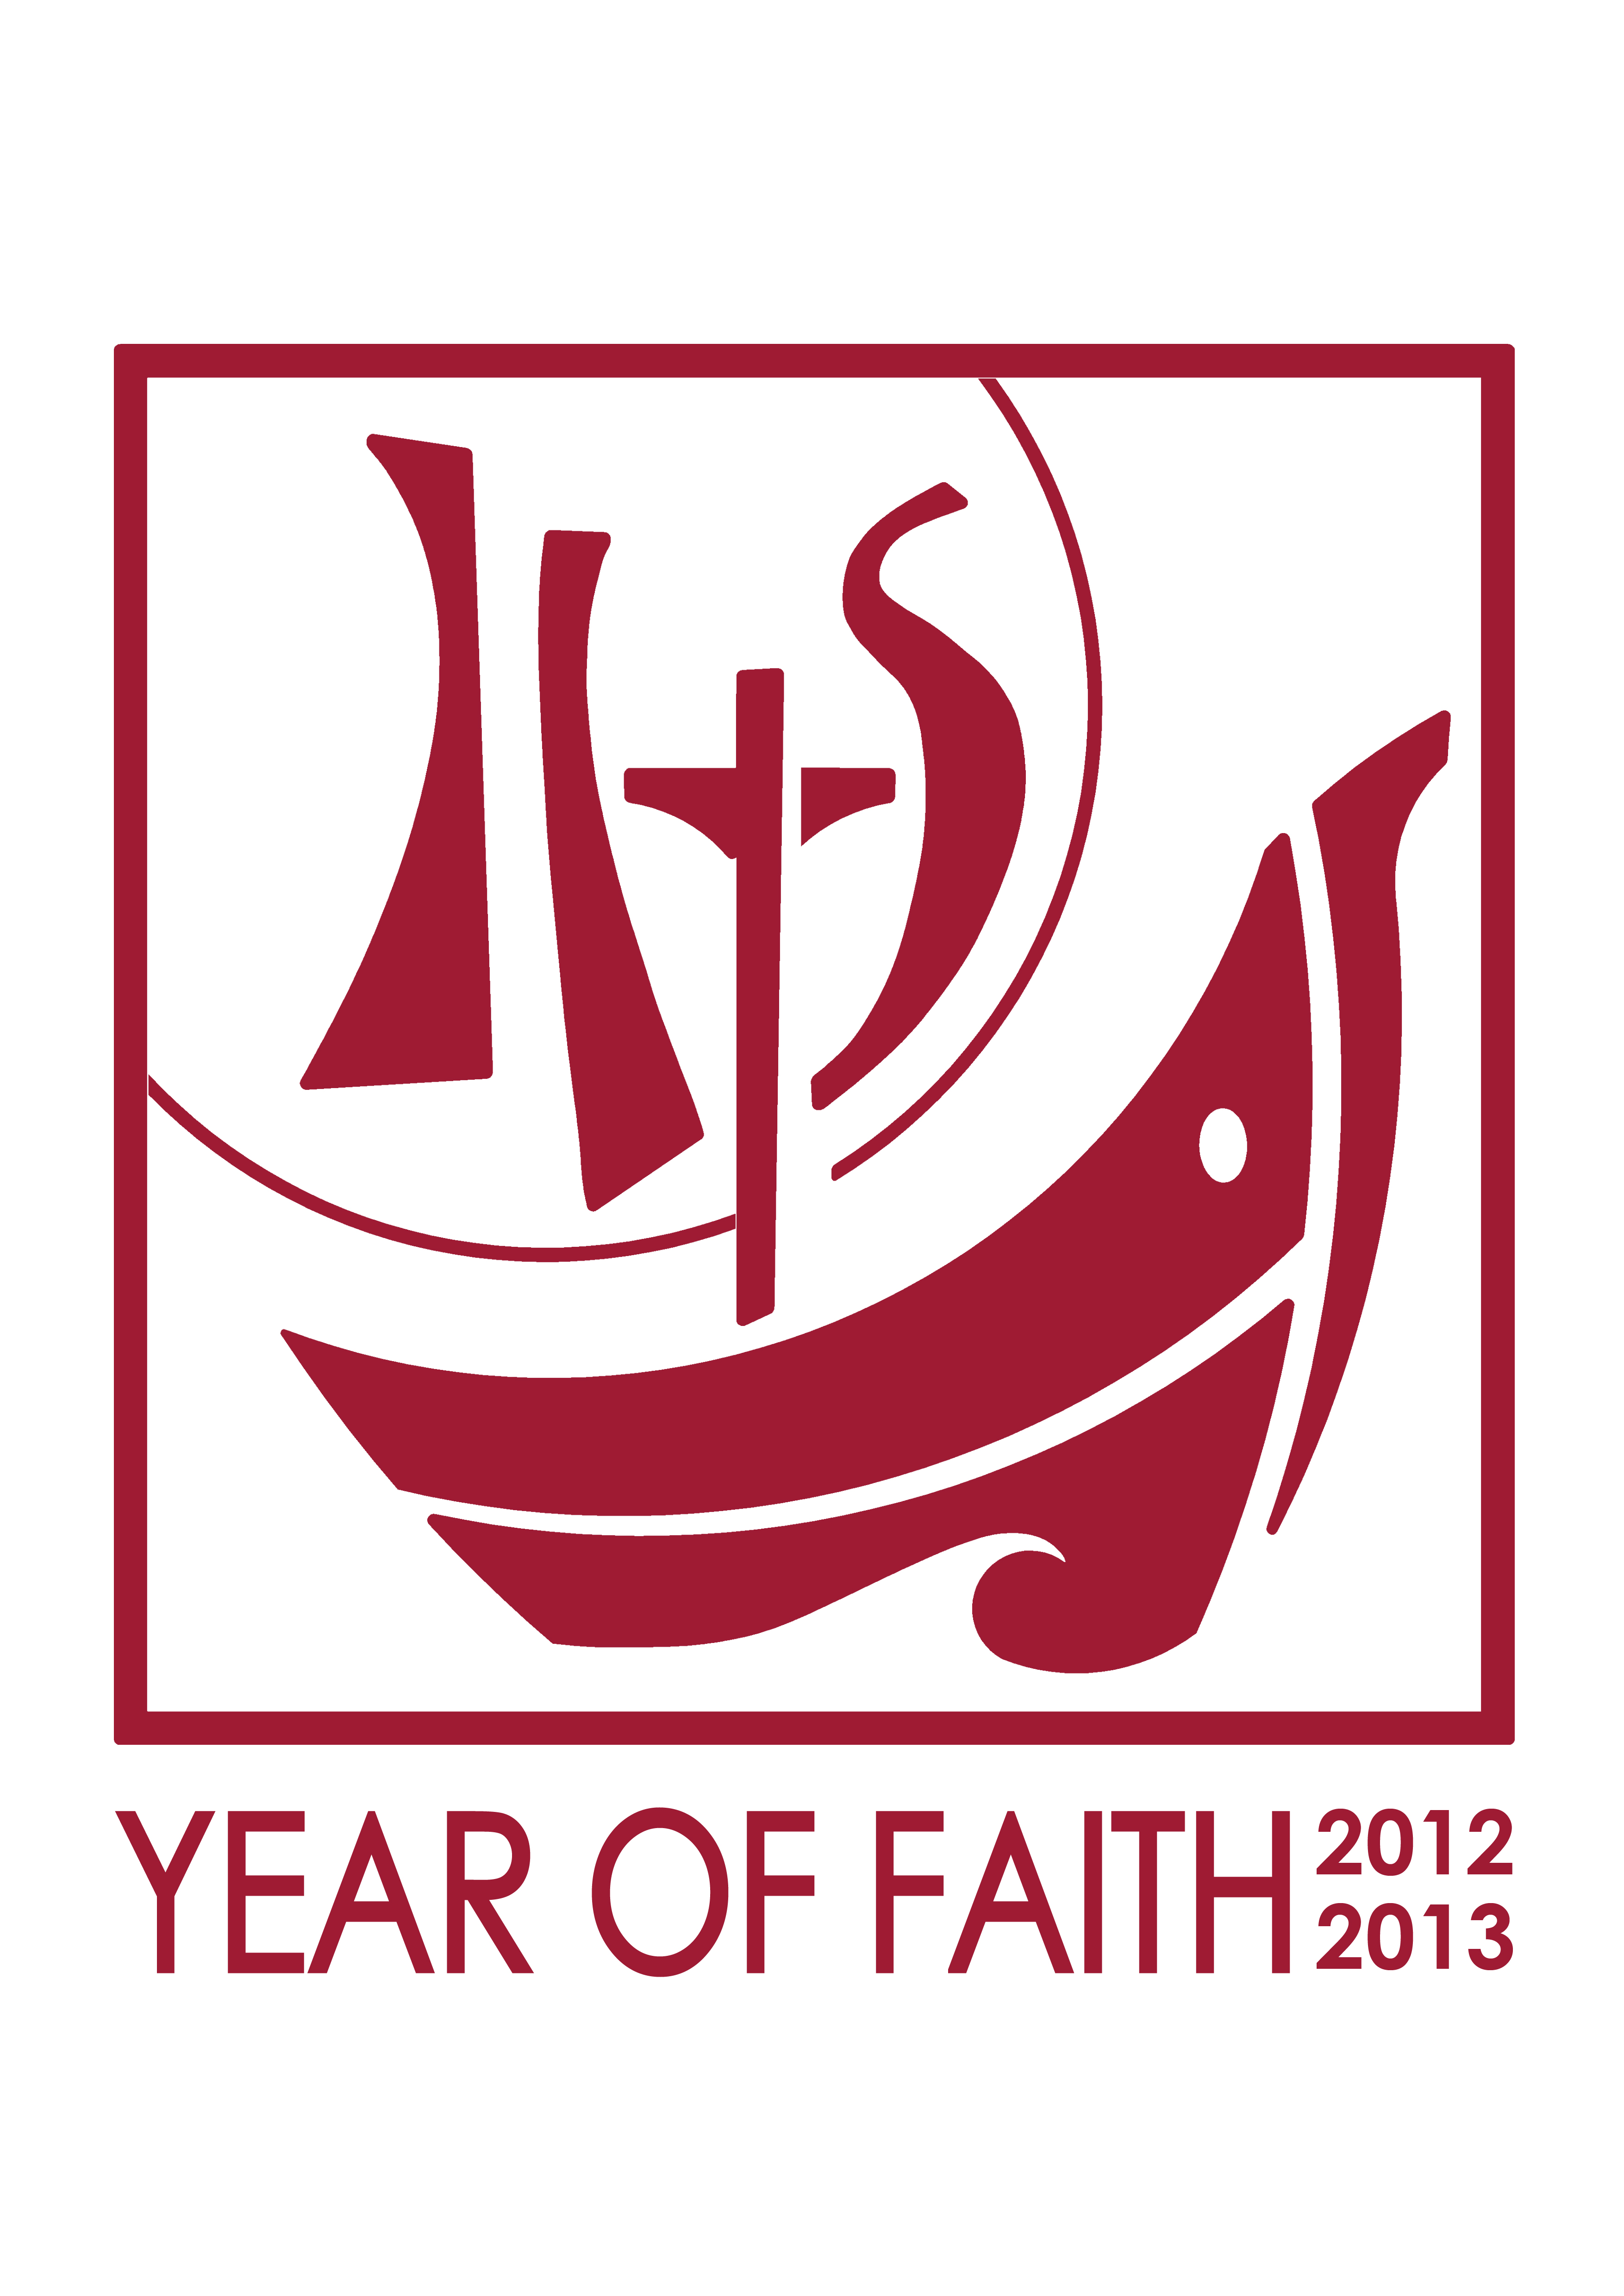 10 Ways Catholics Can Live the Year of Faith